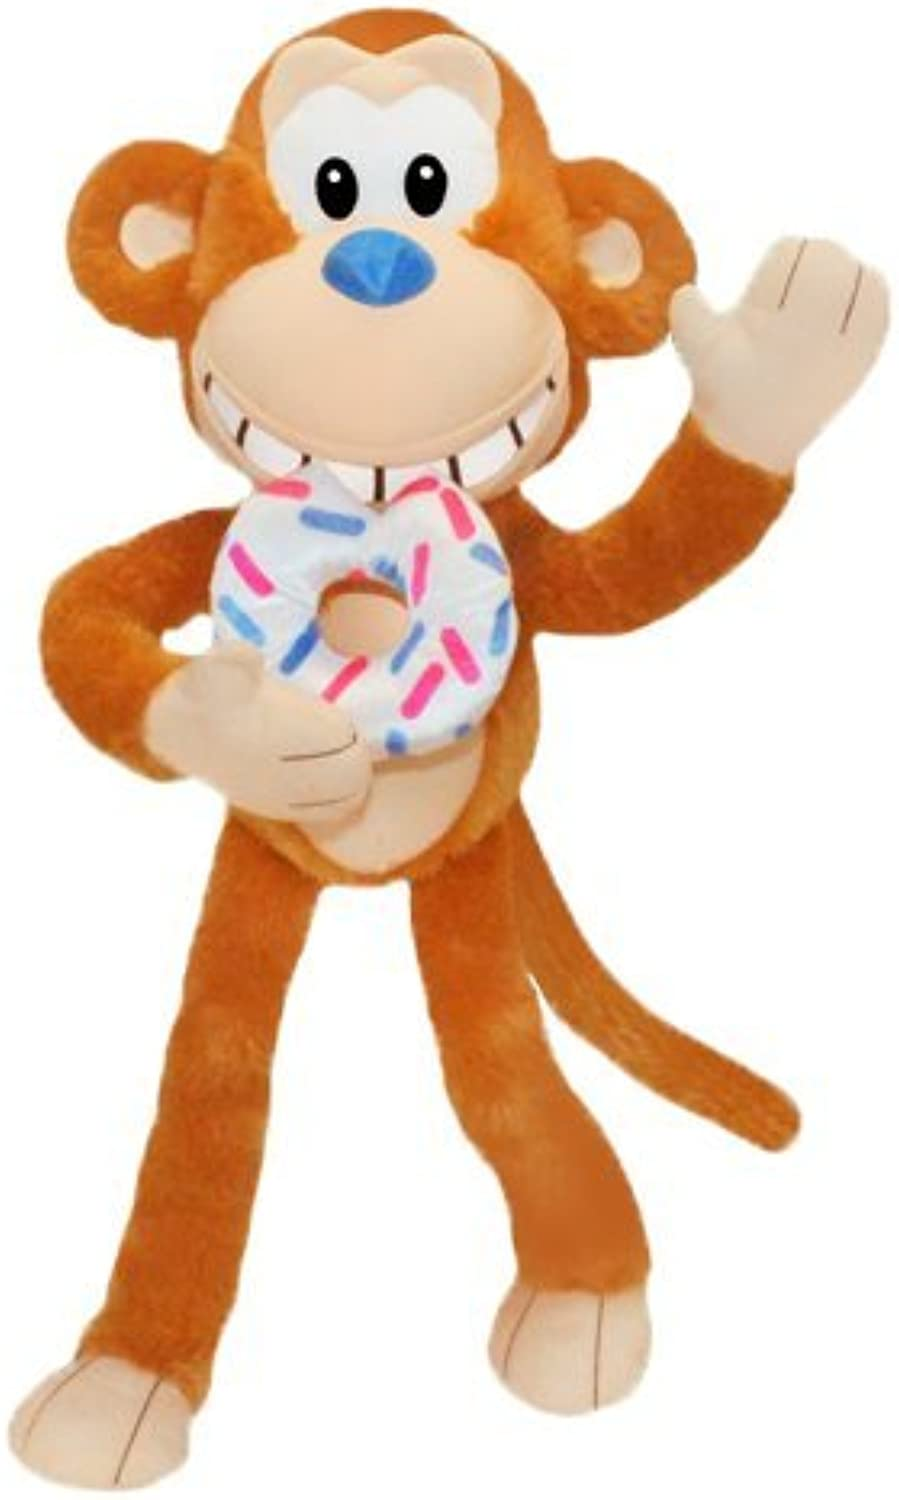 ToySource 7500 SW Crumbs Donut Monkey 44  Plush Collectible Toy, White